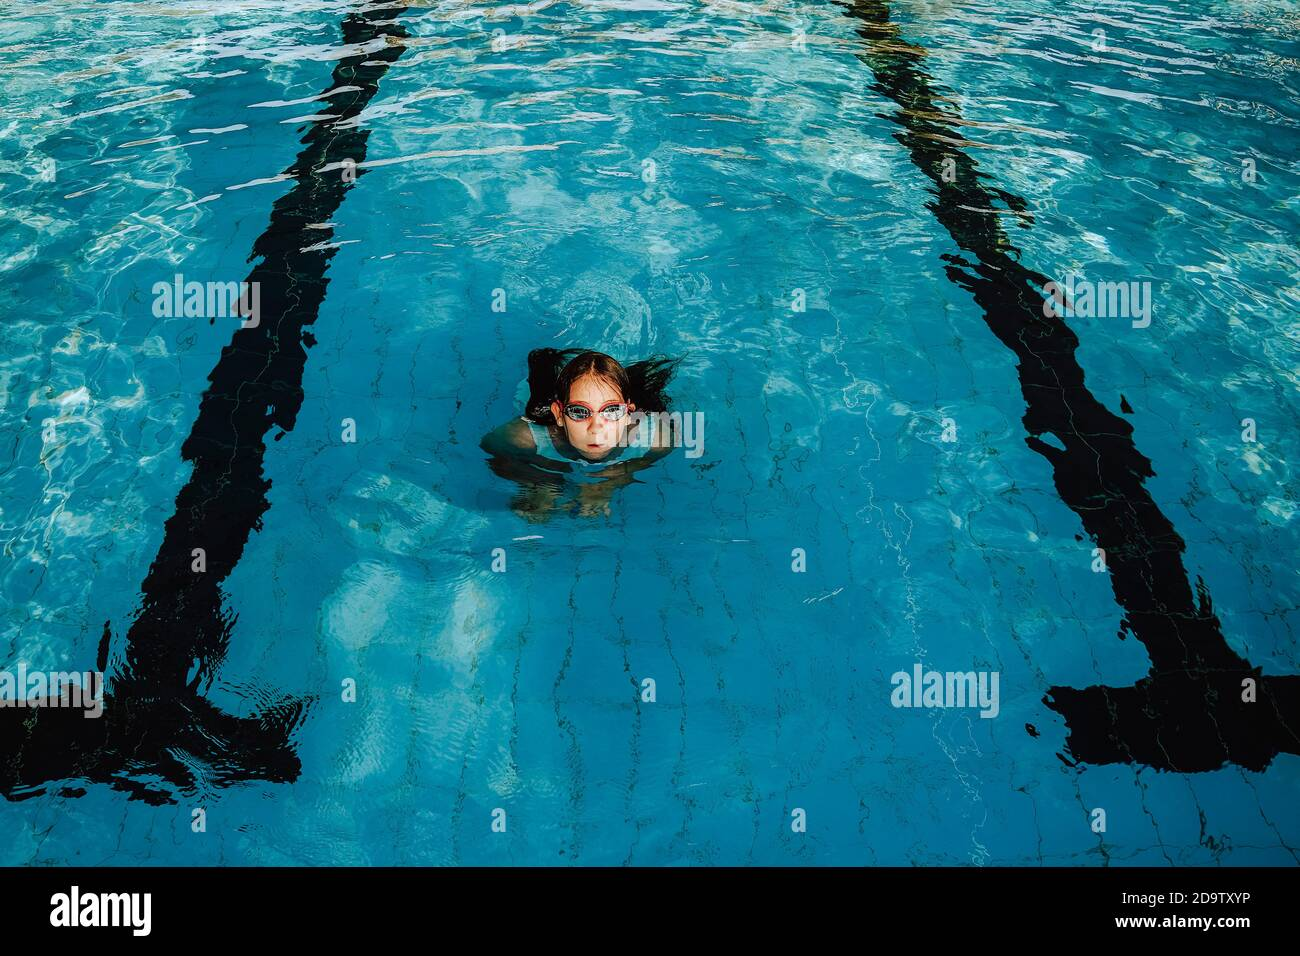 young-girl-wearing-swimming-goggles-in-a